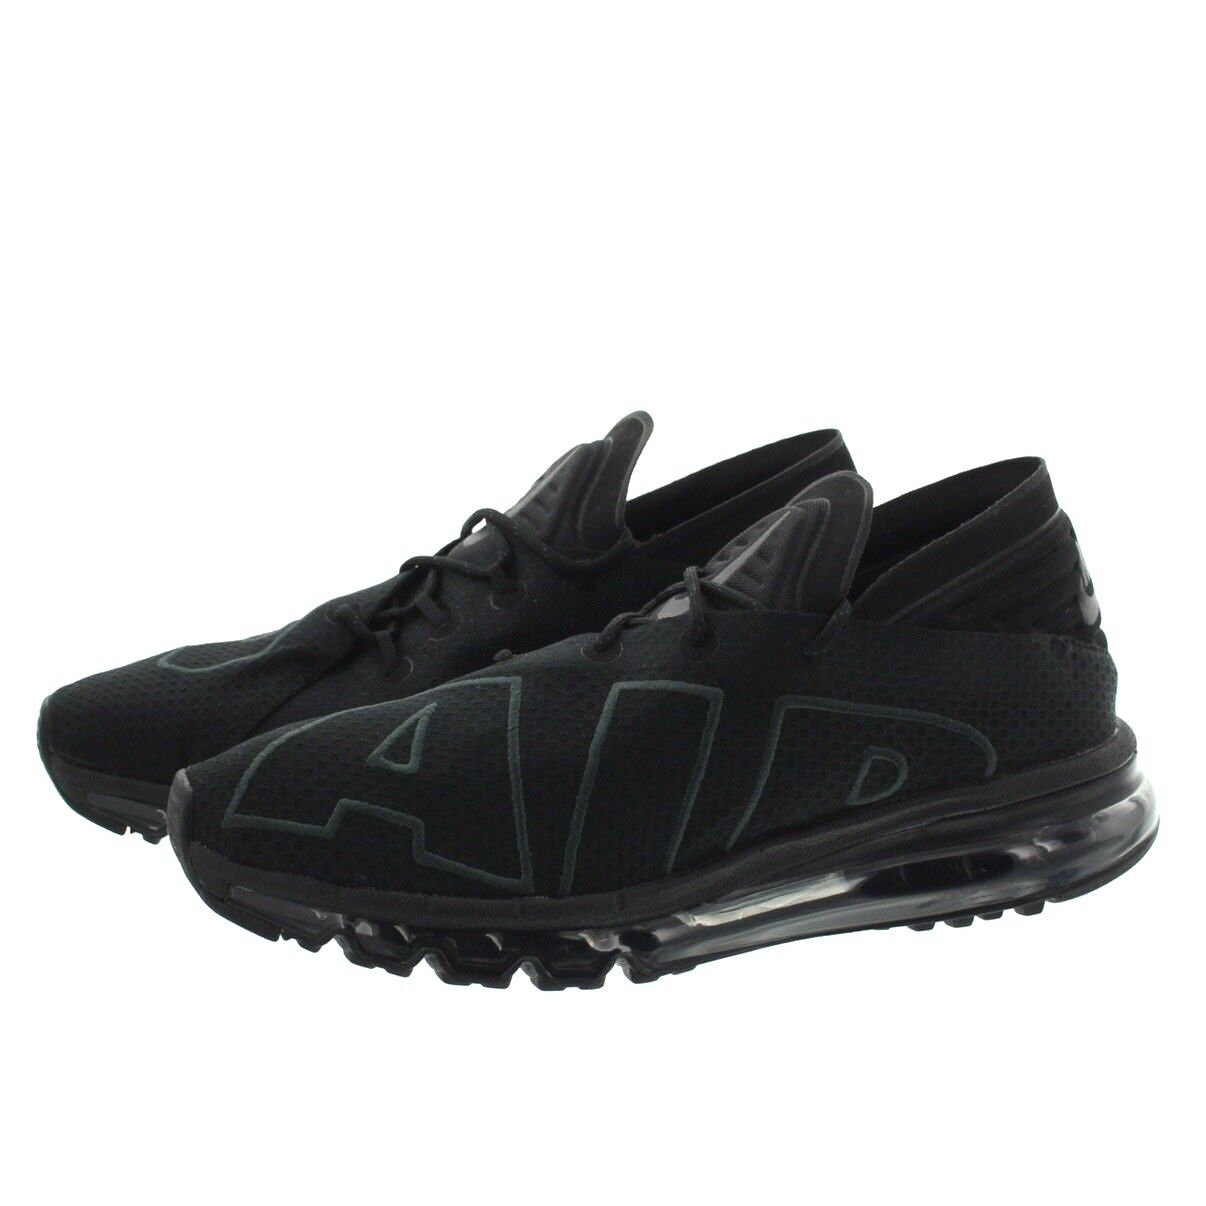 6c620c531d33 ... Nike 842236 Mens Air Max Flair Running Shoes Training Mid Top Shoes  Running Sneakers e4f11e ...